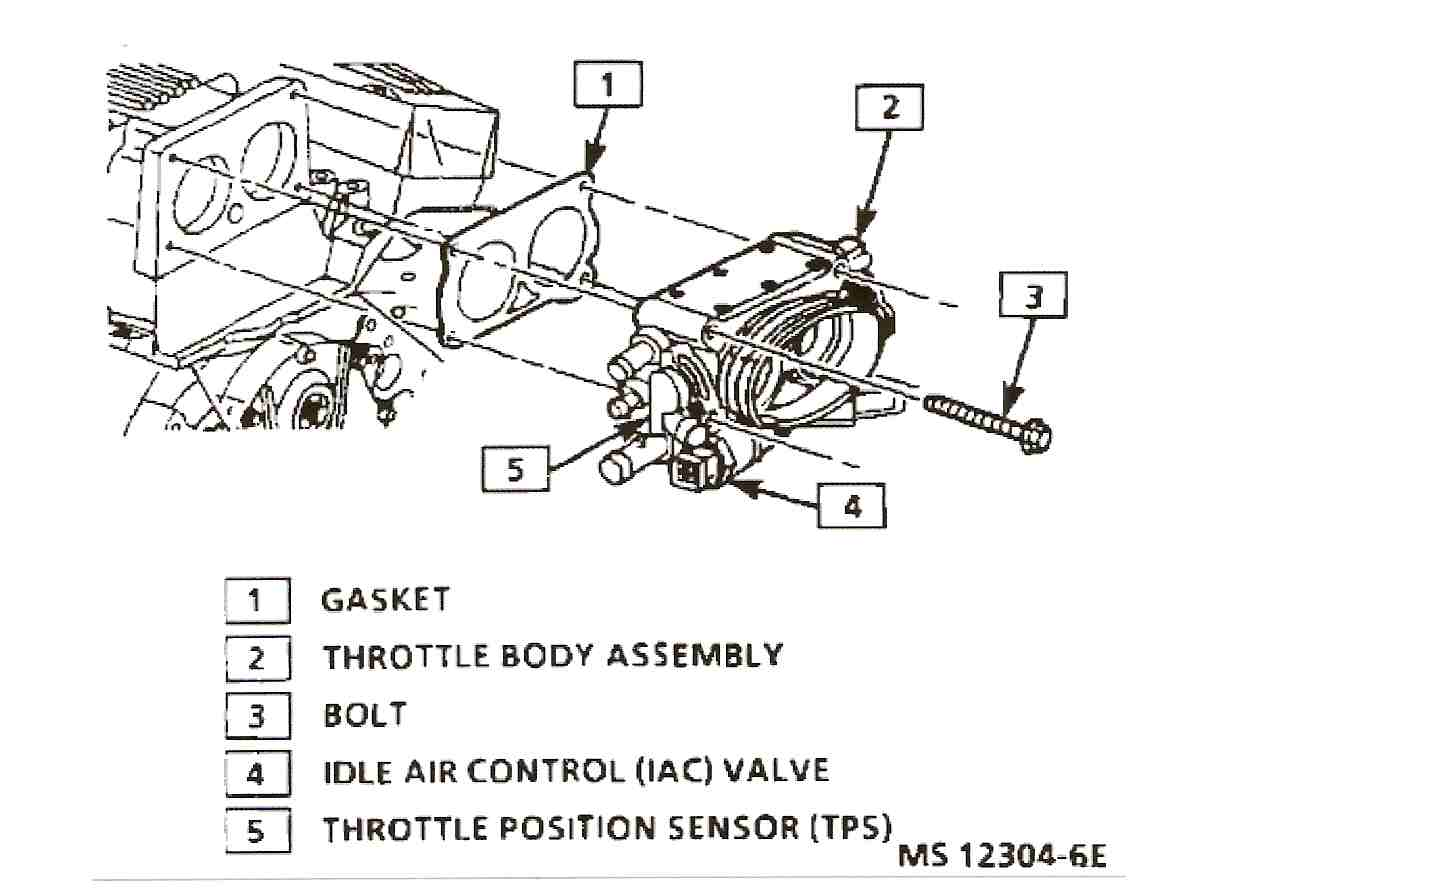 Throttle Body Diagram besides 1997 Jaguar Xk8 Vacuum Diagram together with 2000 Jaguar Xj8 Engine Diagram likewise 1997 Jaguar Xk8 Parts Diagram moreover Jaguar X Type Parts Diagram. on 2002 jaguar xkr parts diagrams